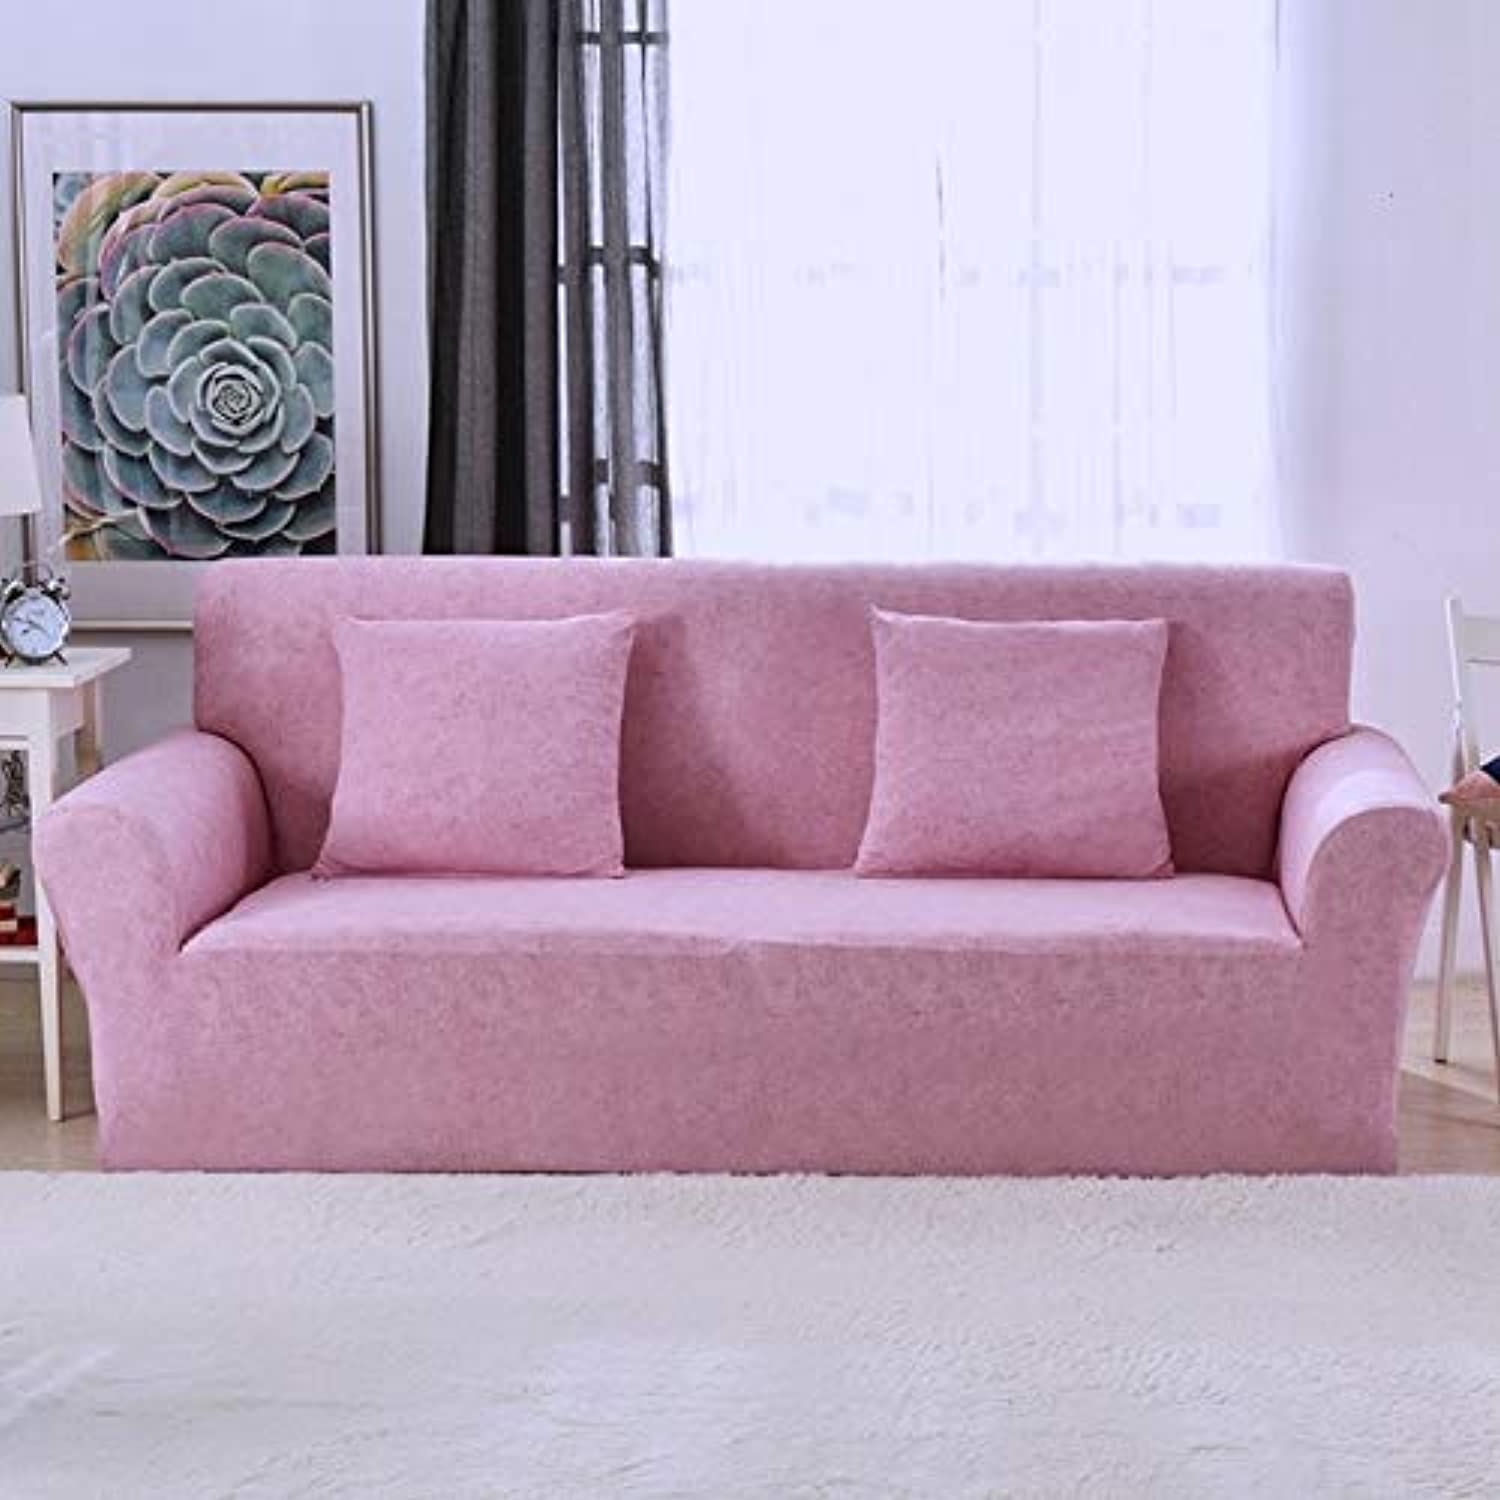 Modern Universal Stretch Sofa Covers for Living Room Elastic Furniture Armchair Covers Sectional Couch Slipcover 1 2 3 4 Seat   3, 2 Seater